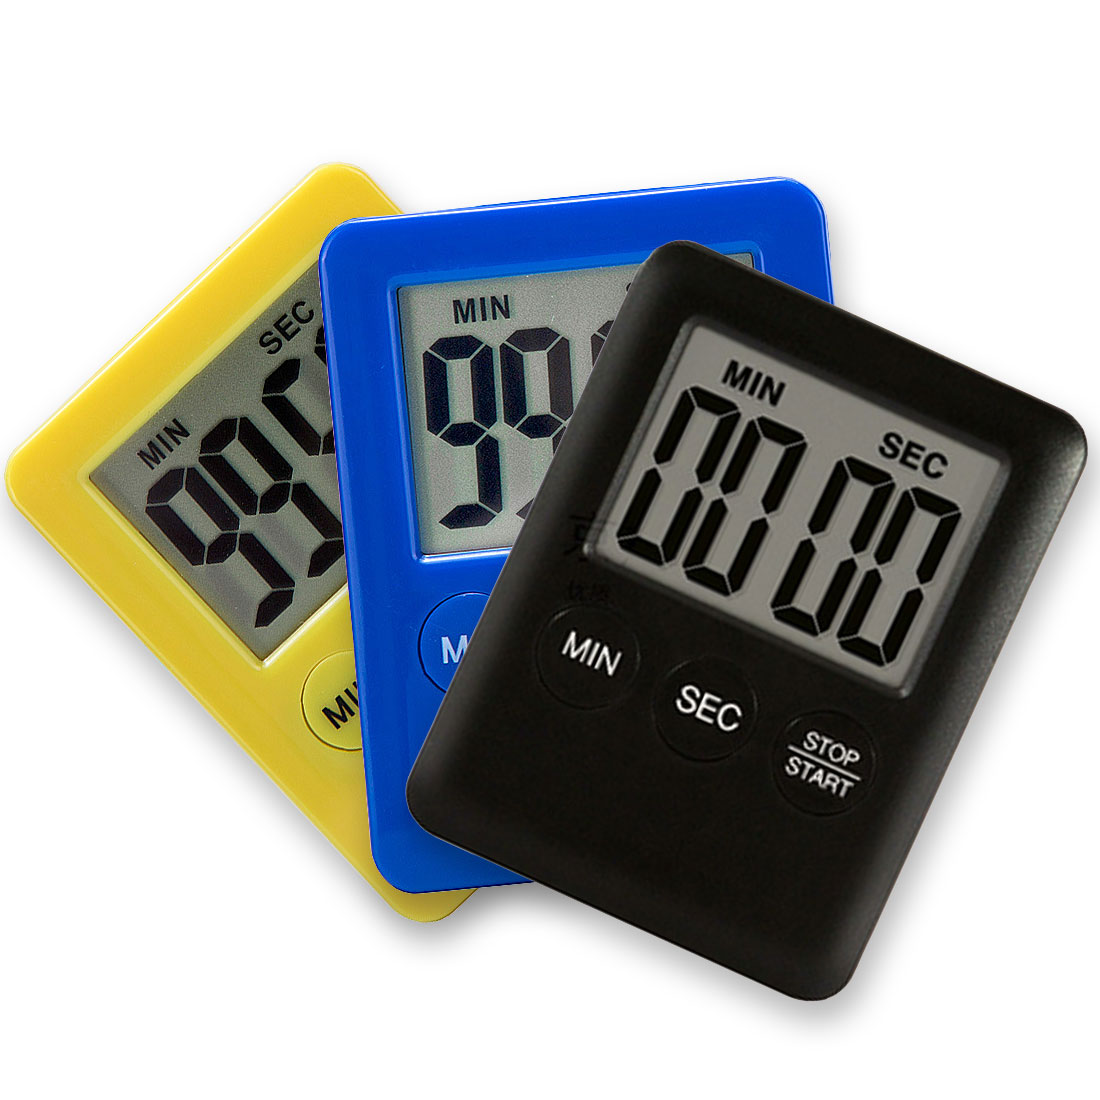 1Pc Electronic LCD Digital Screen Kitchen Timer Square Cooking Count Up Countdown Alarm Magnet Clock 99 Minute